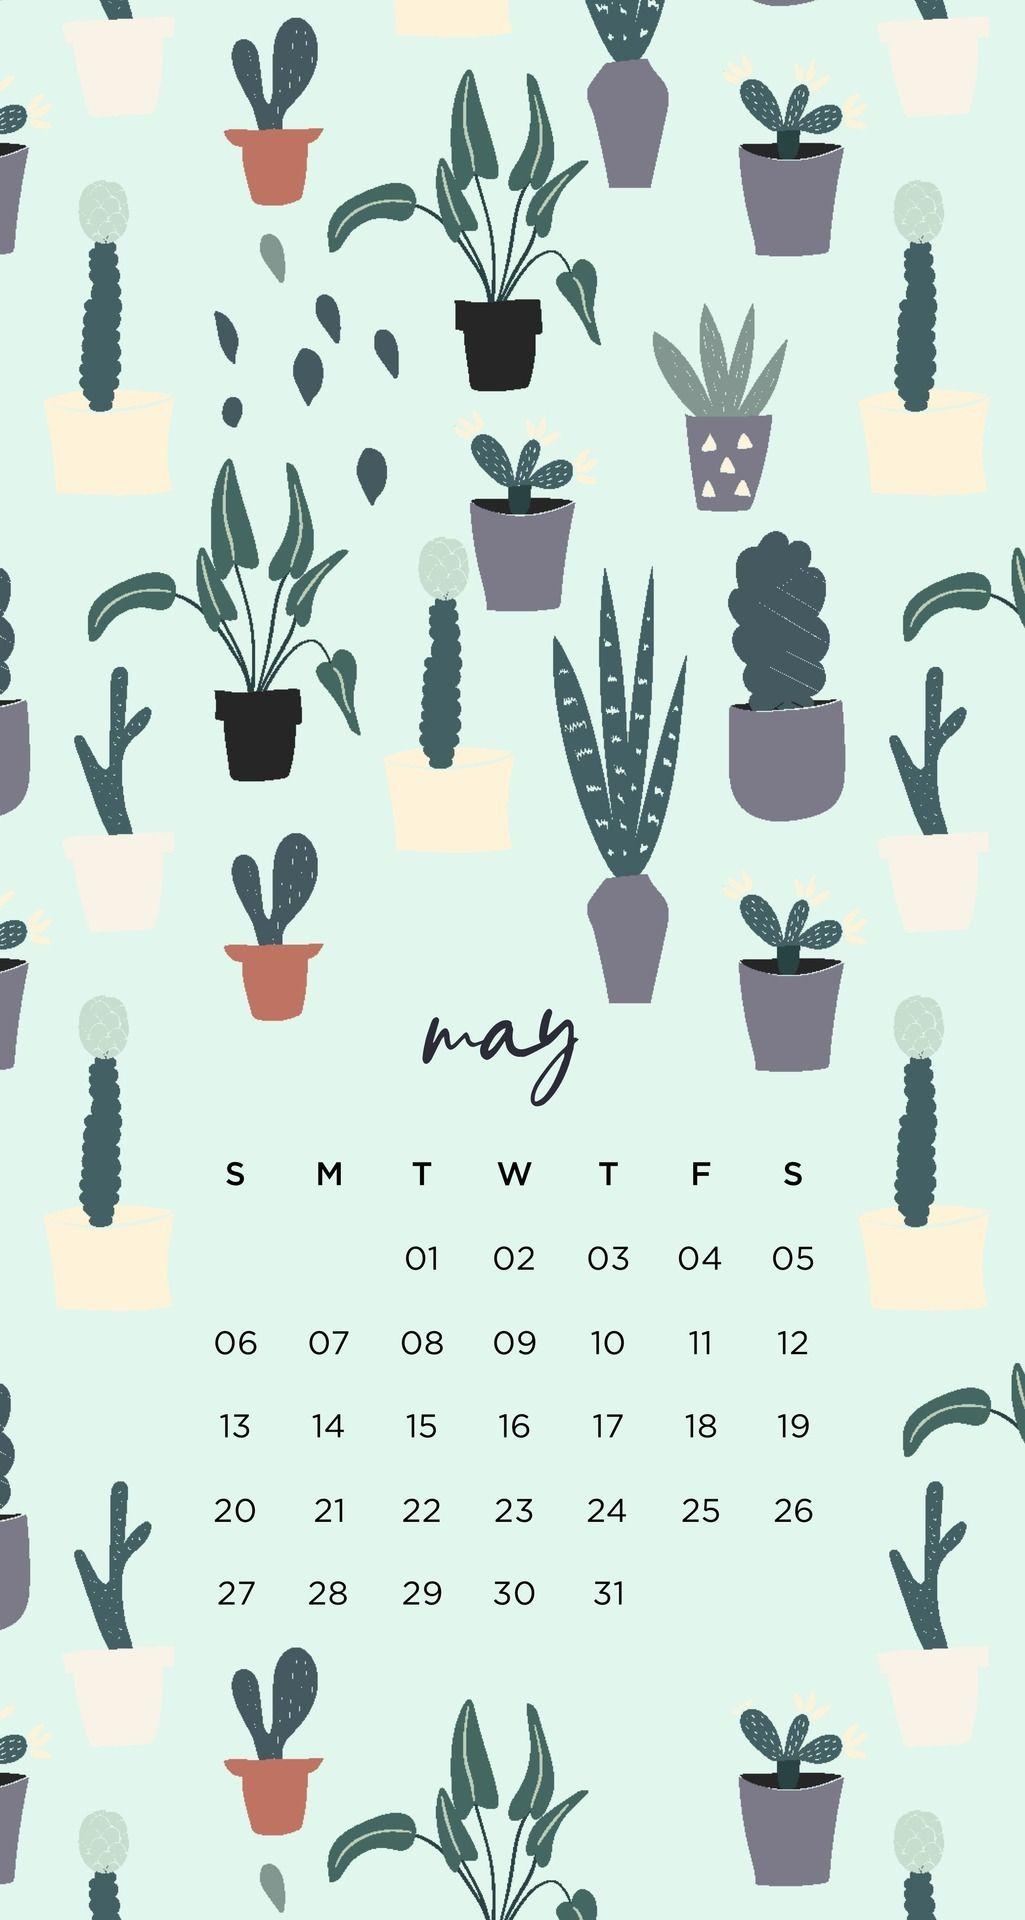 Succulent Tumblr Plant Calendar Iphone Lock Screen Emma's throughout Iphone Lock Screen Calendar